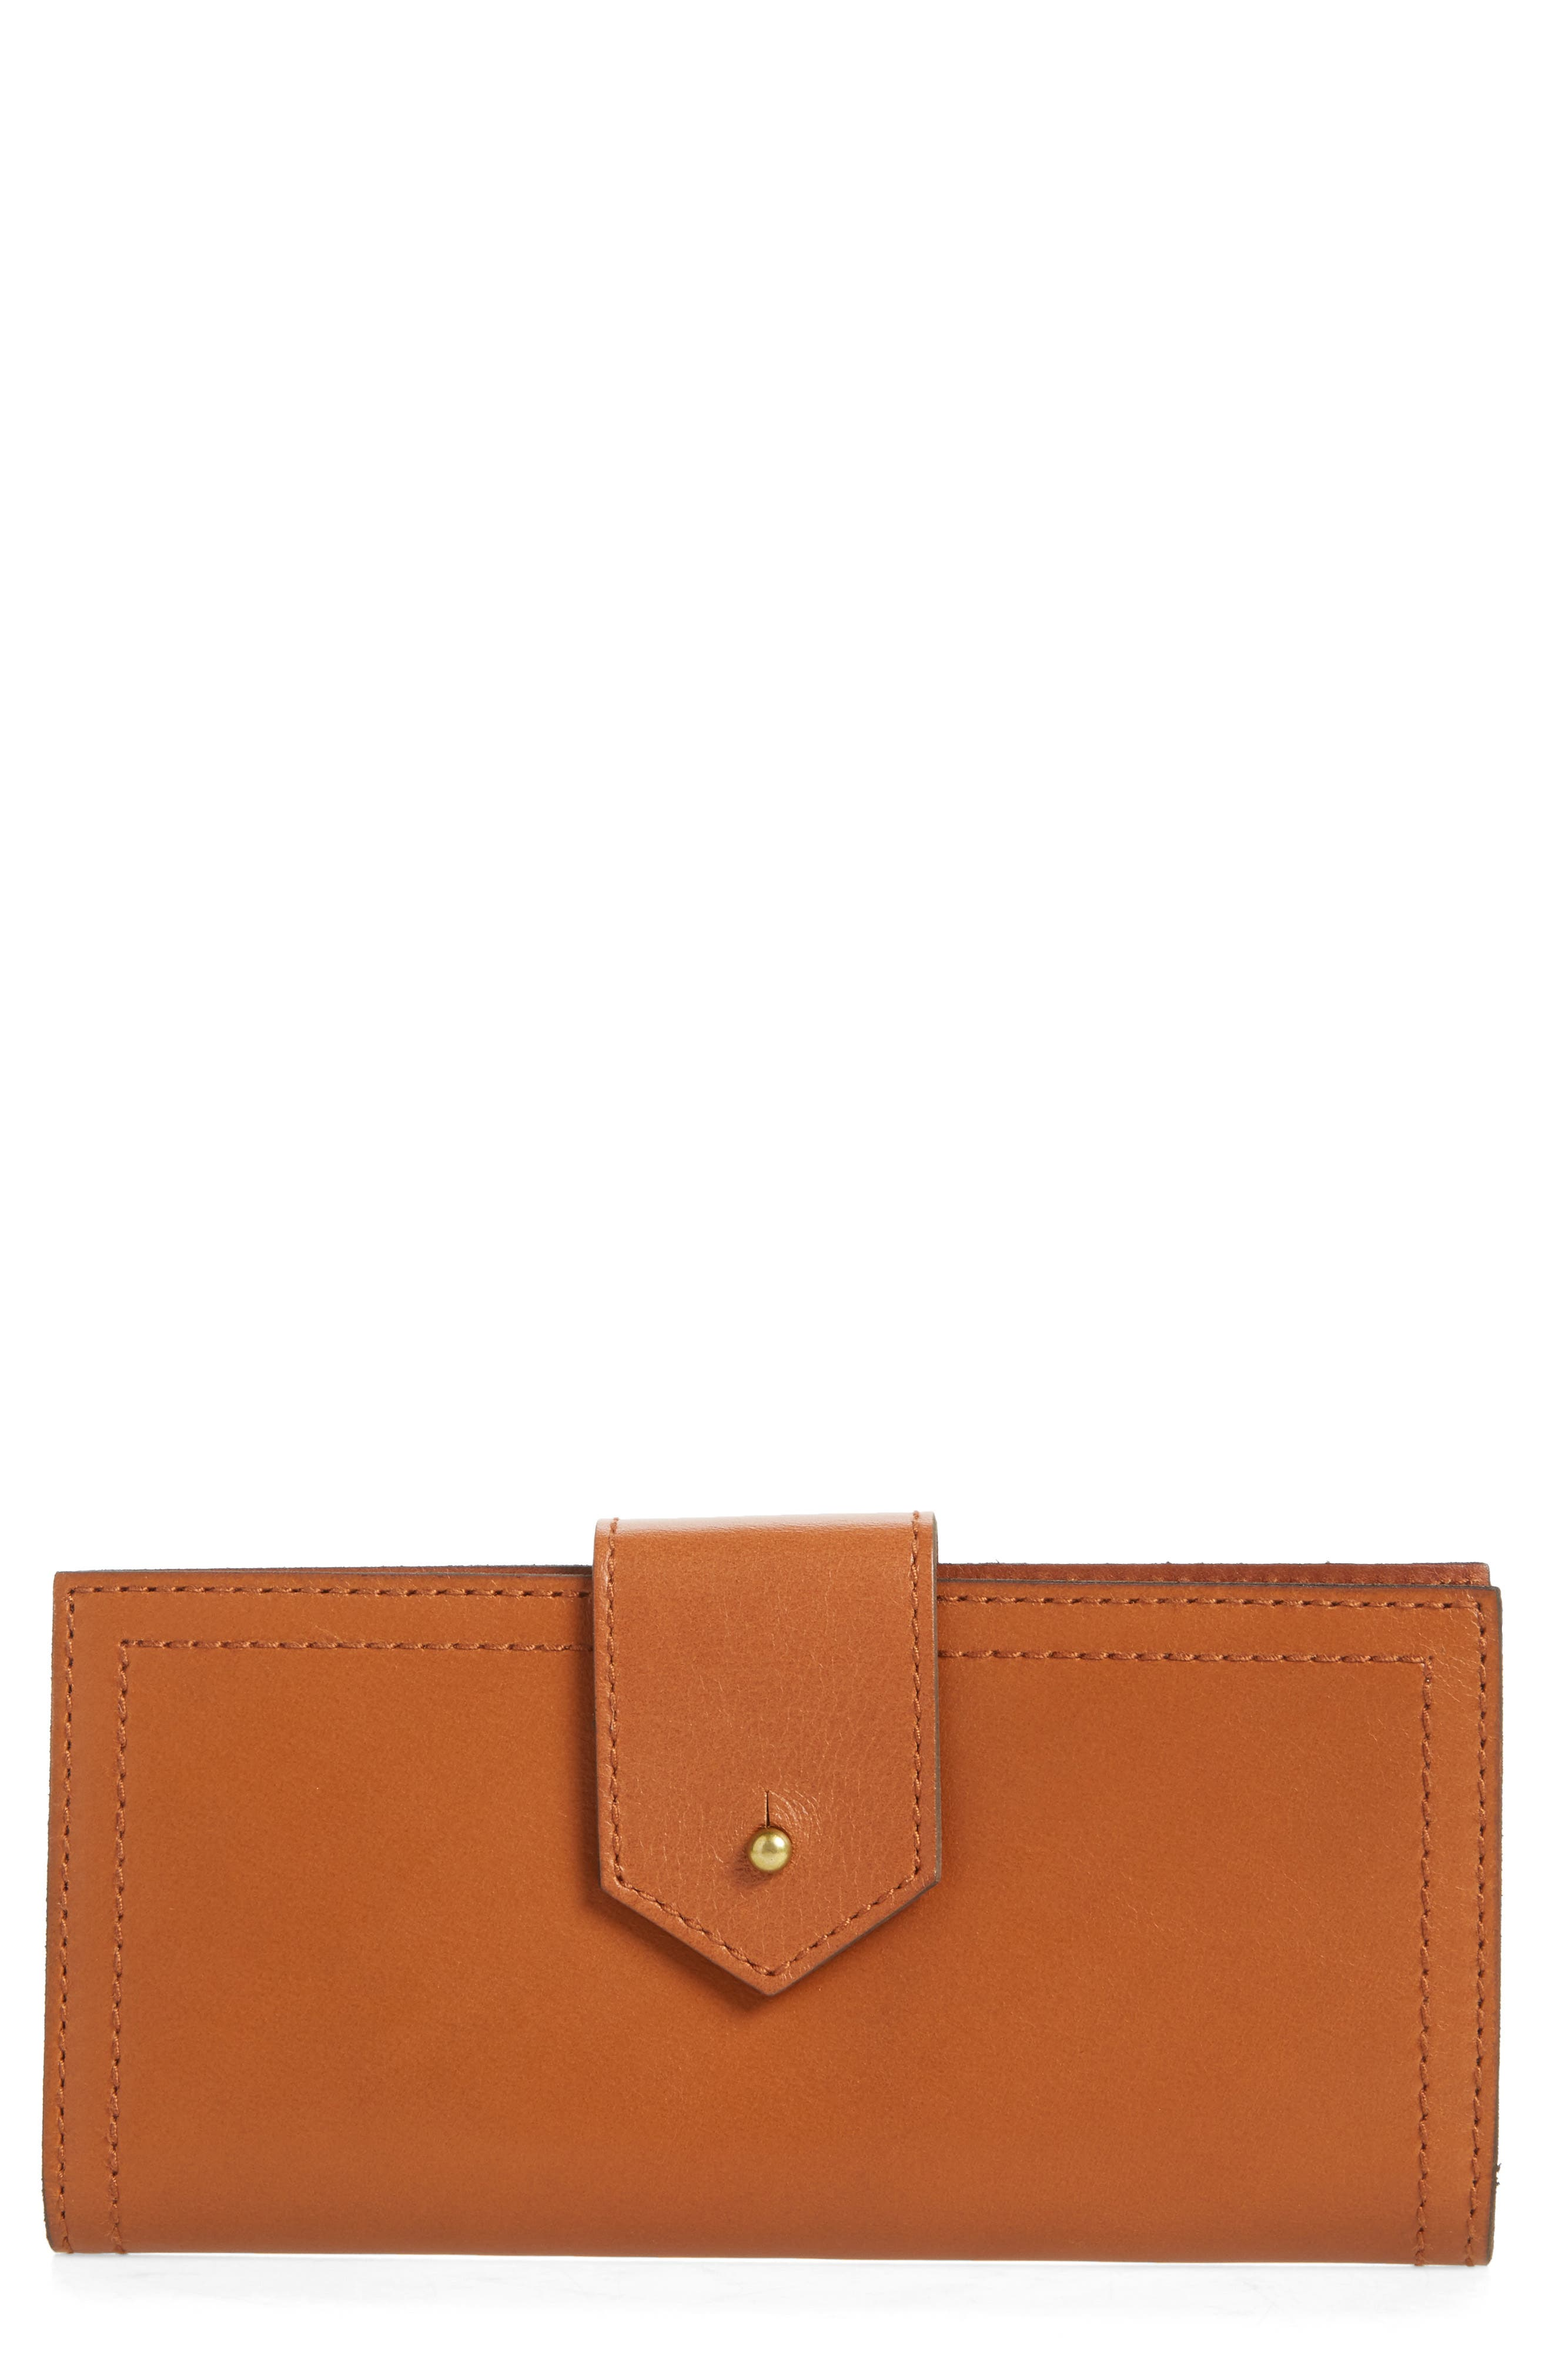 Madewell The Post Leather Wallet